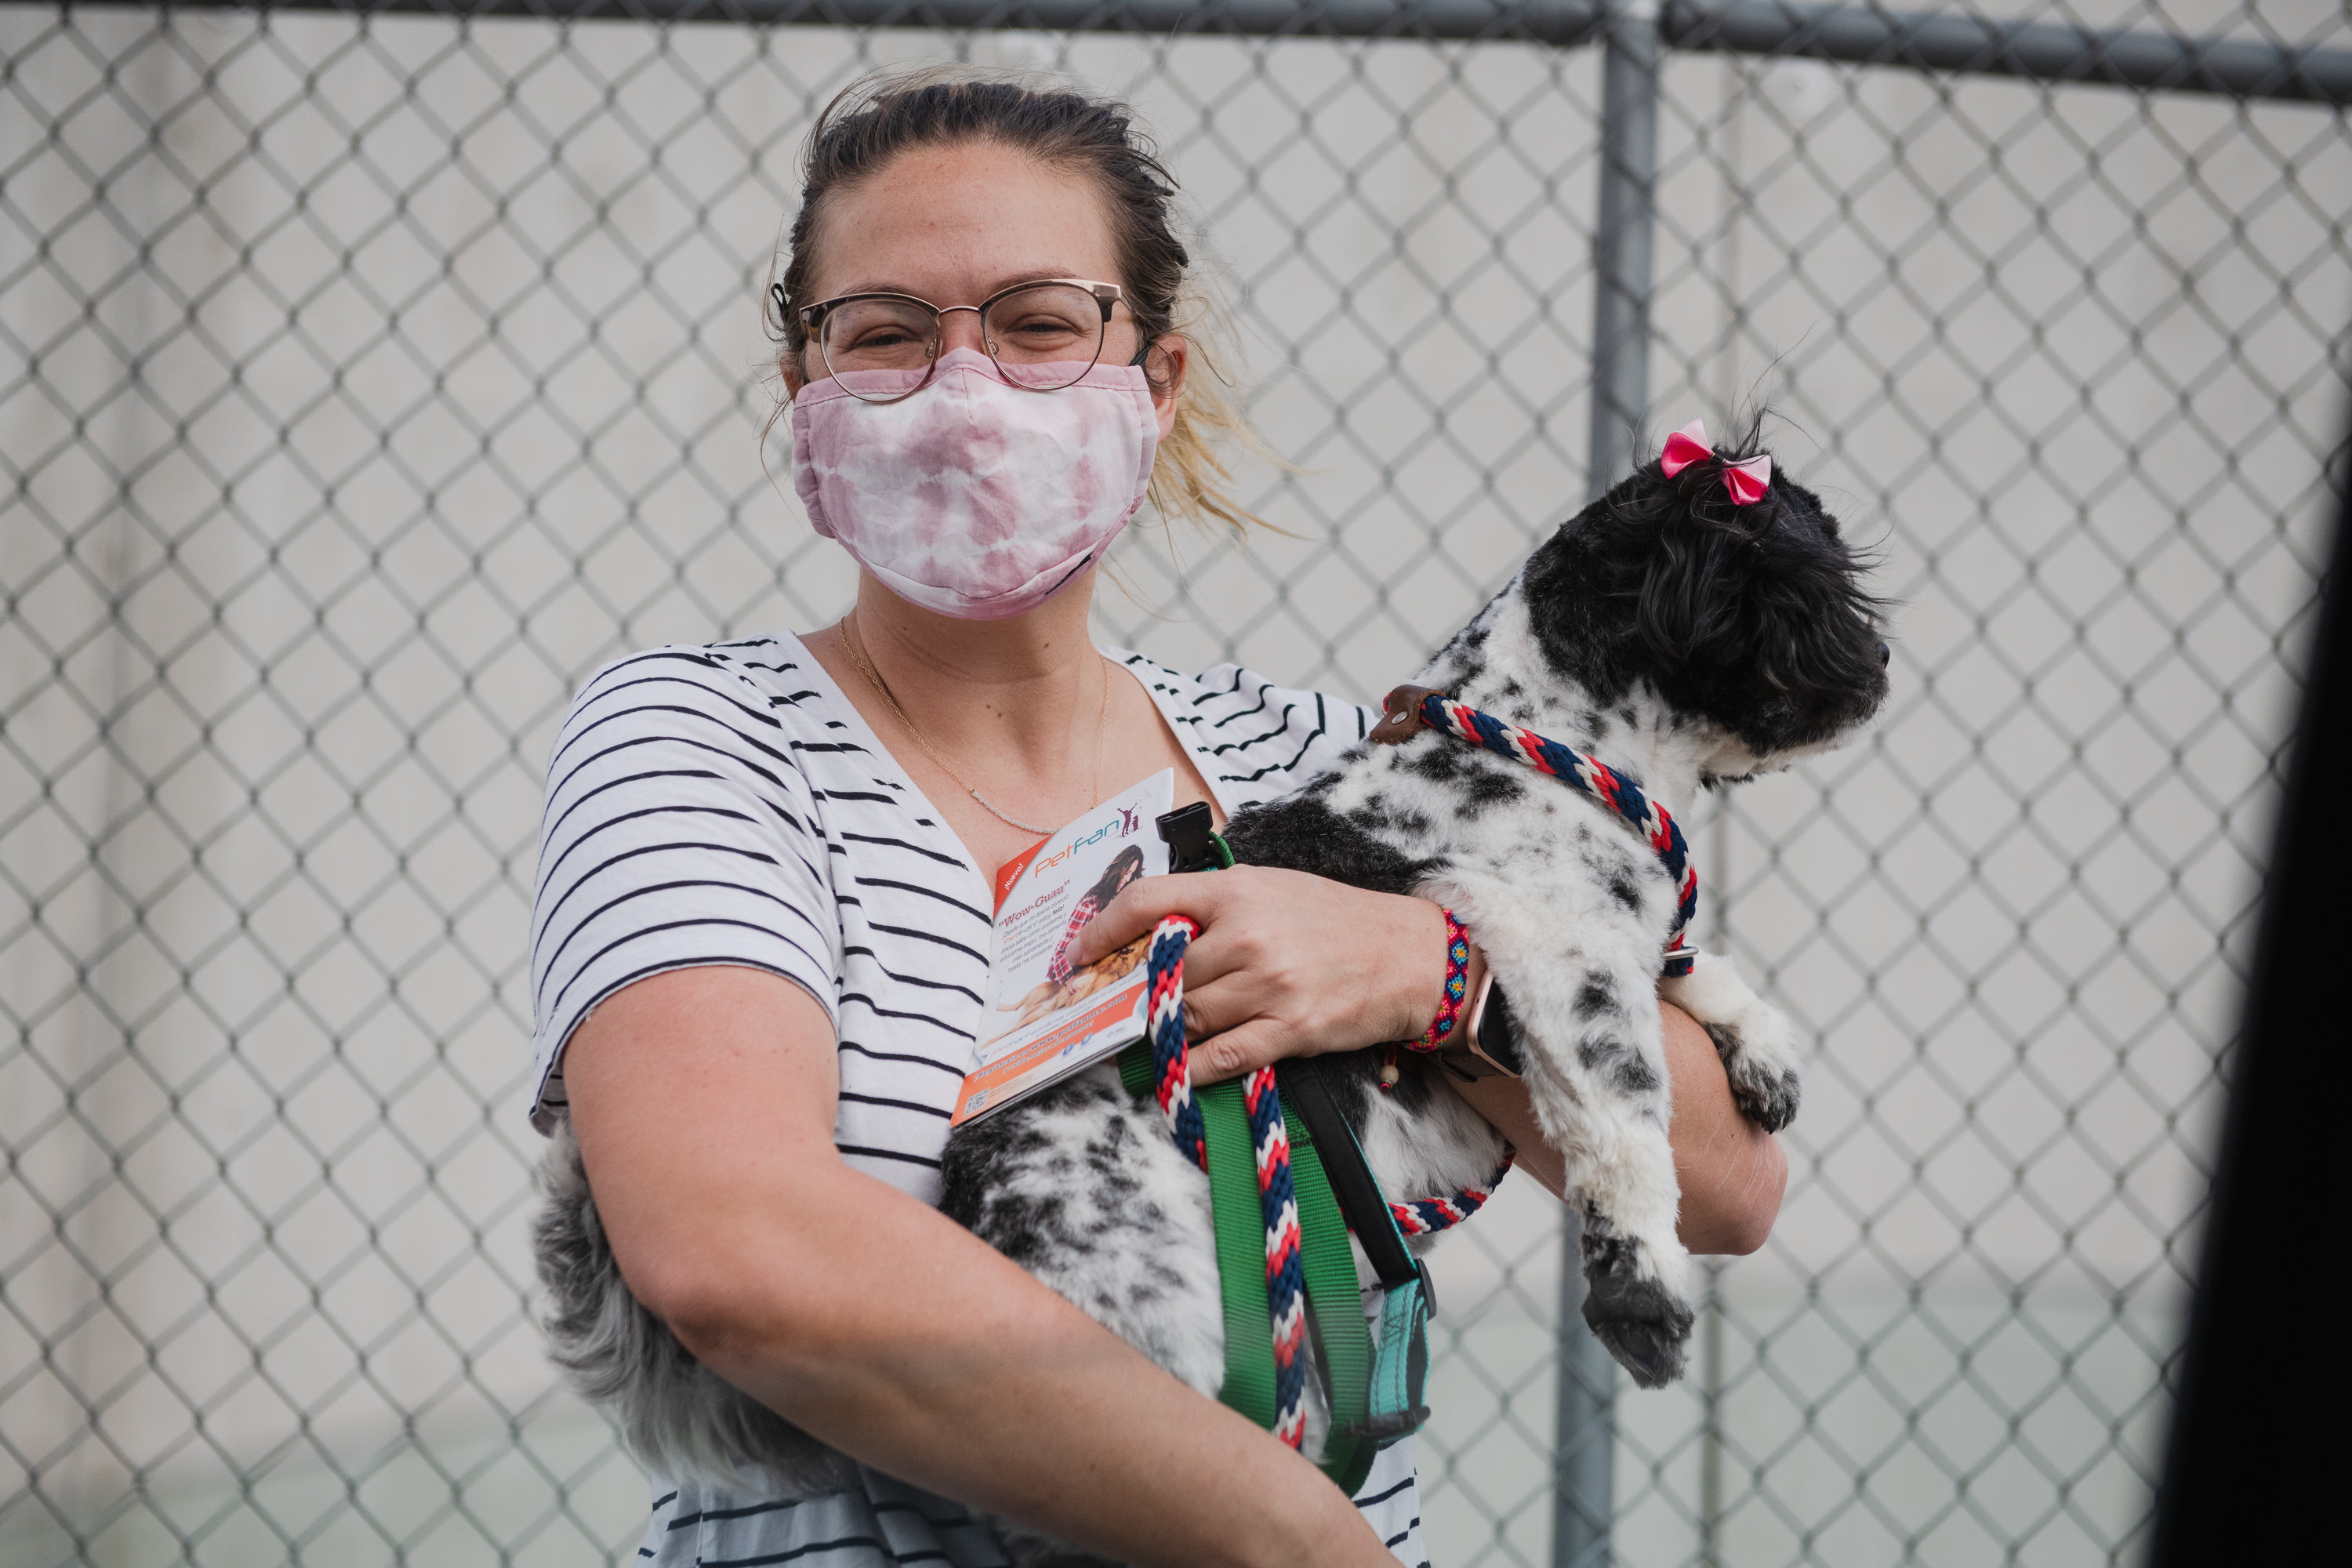 A woman wearing a face masks smiles widely and holds a small dog with a bow above its ear